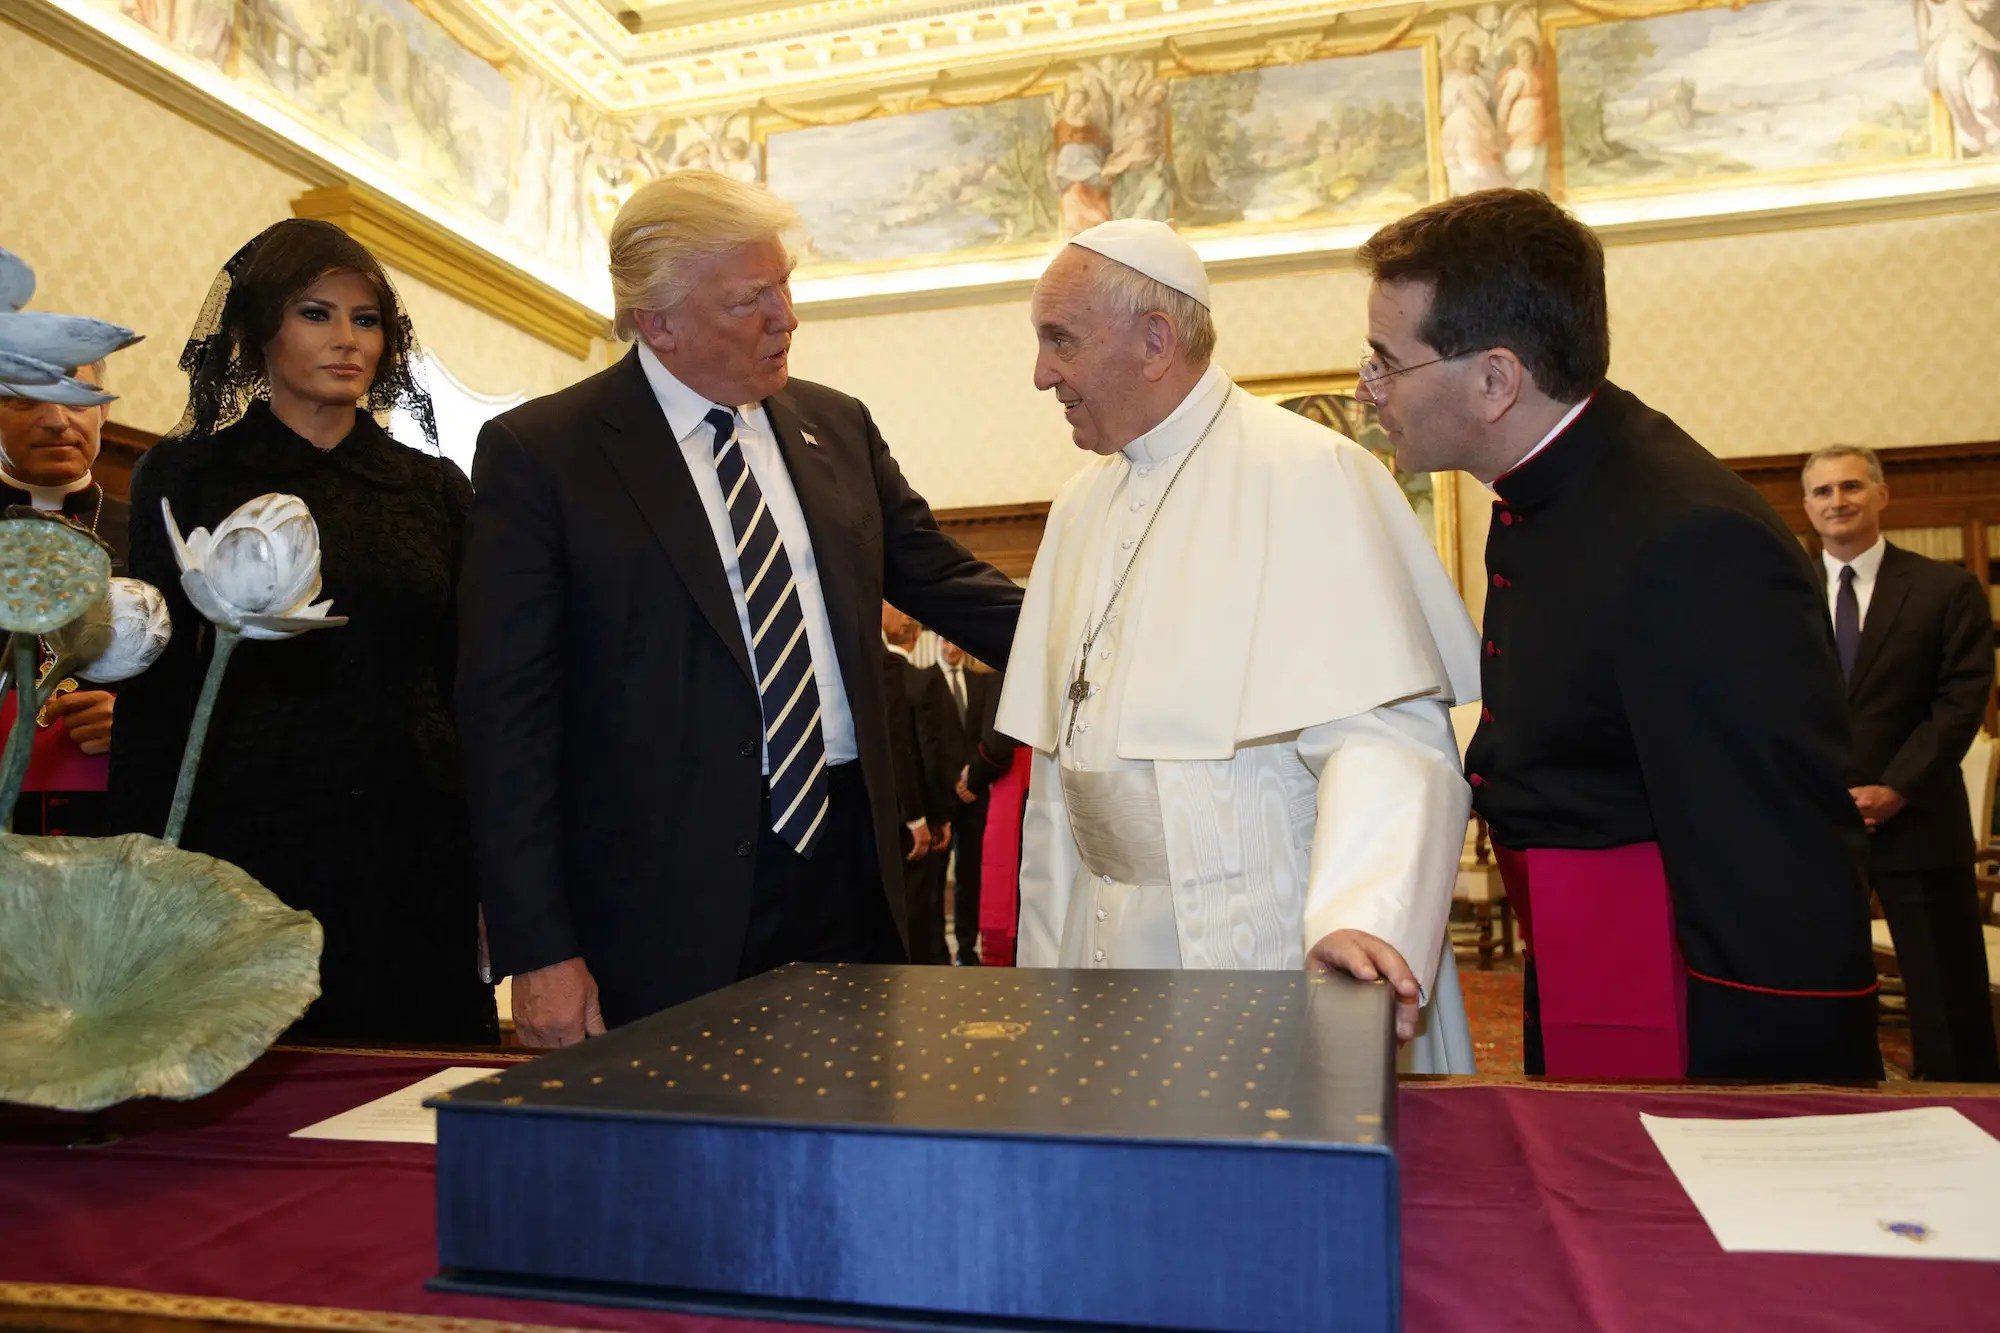 """I signed it personally for you,"" Pope Francis said as he handed Trump the copy of his speech. Trump gave the pope a first-edition set of Martin Luther King Jr.'s writings."